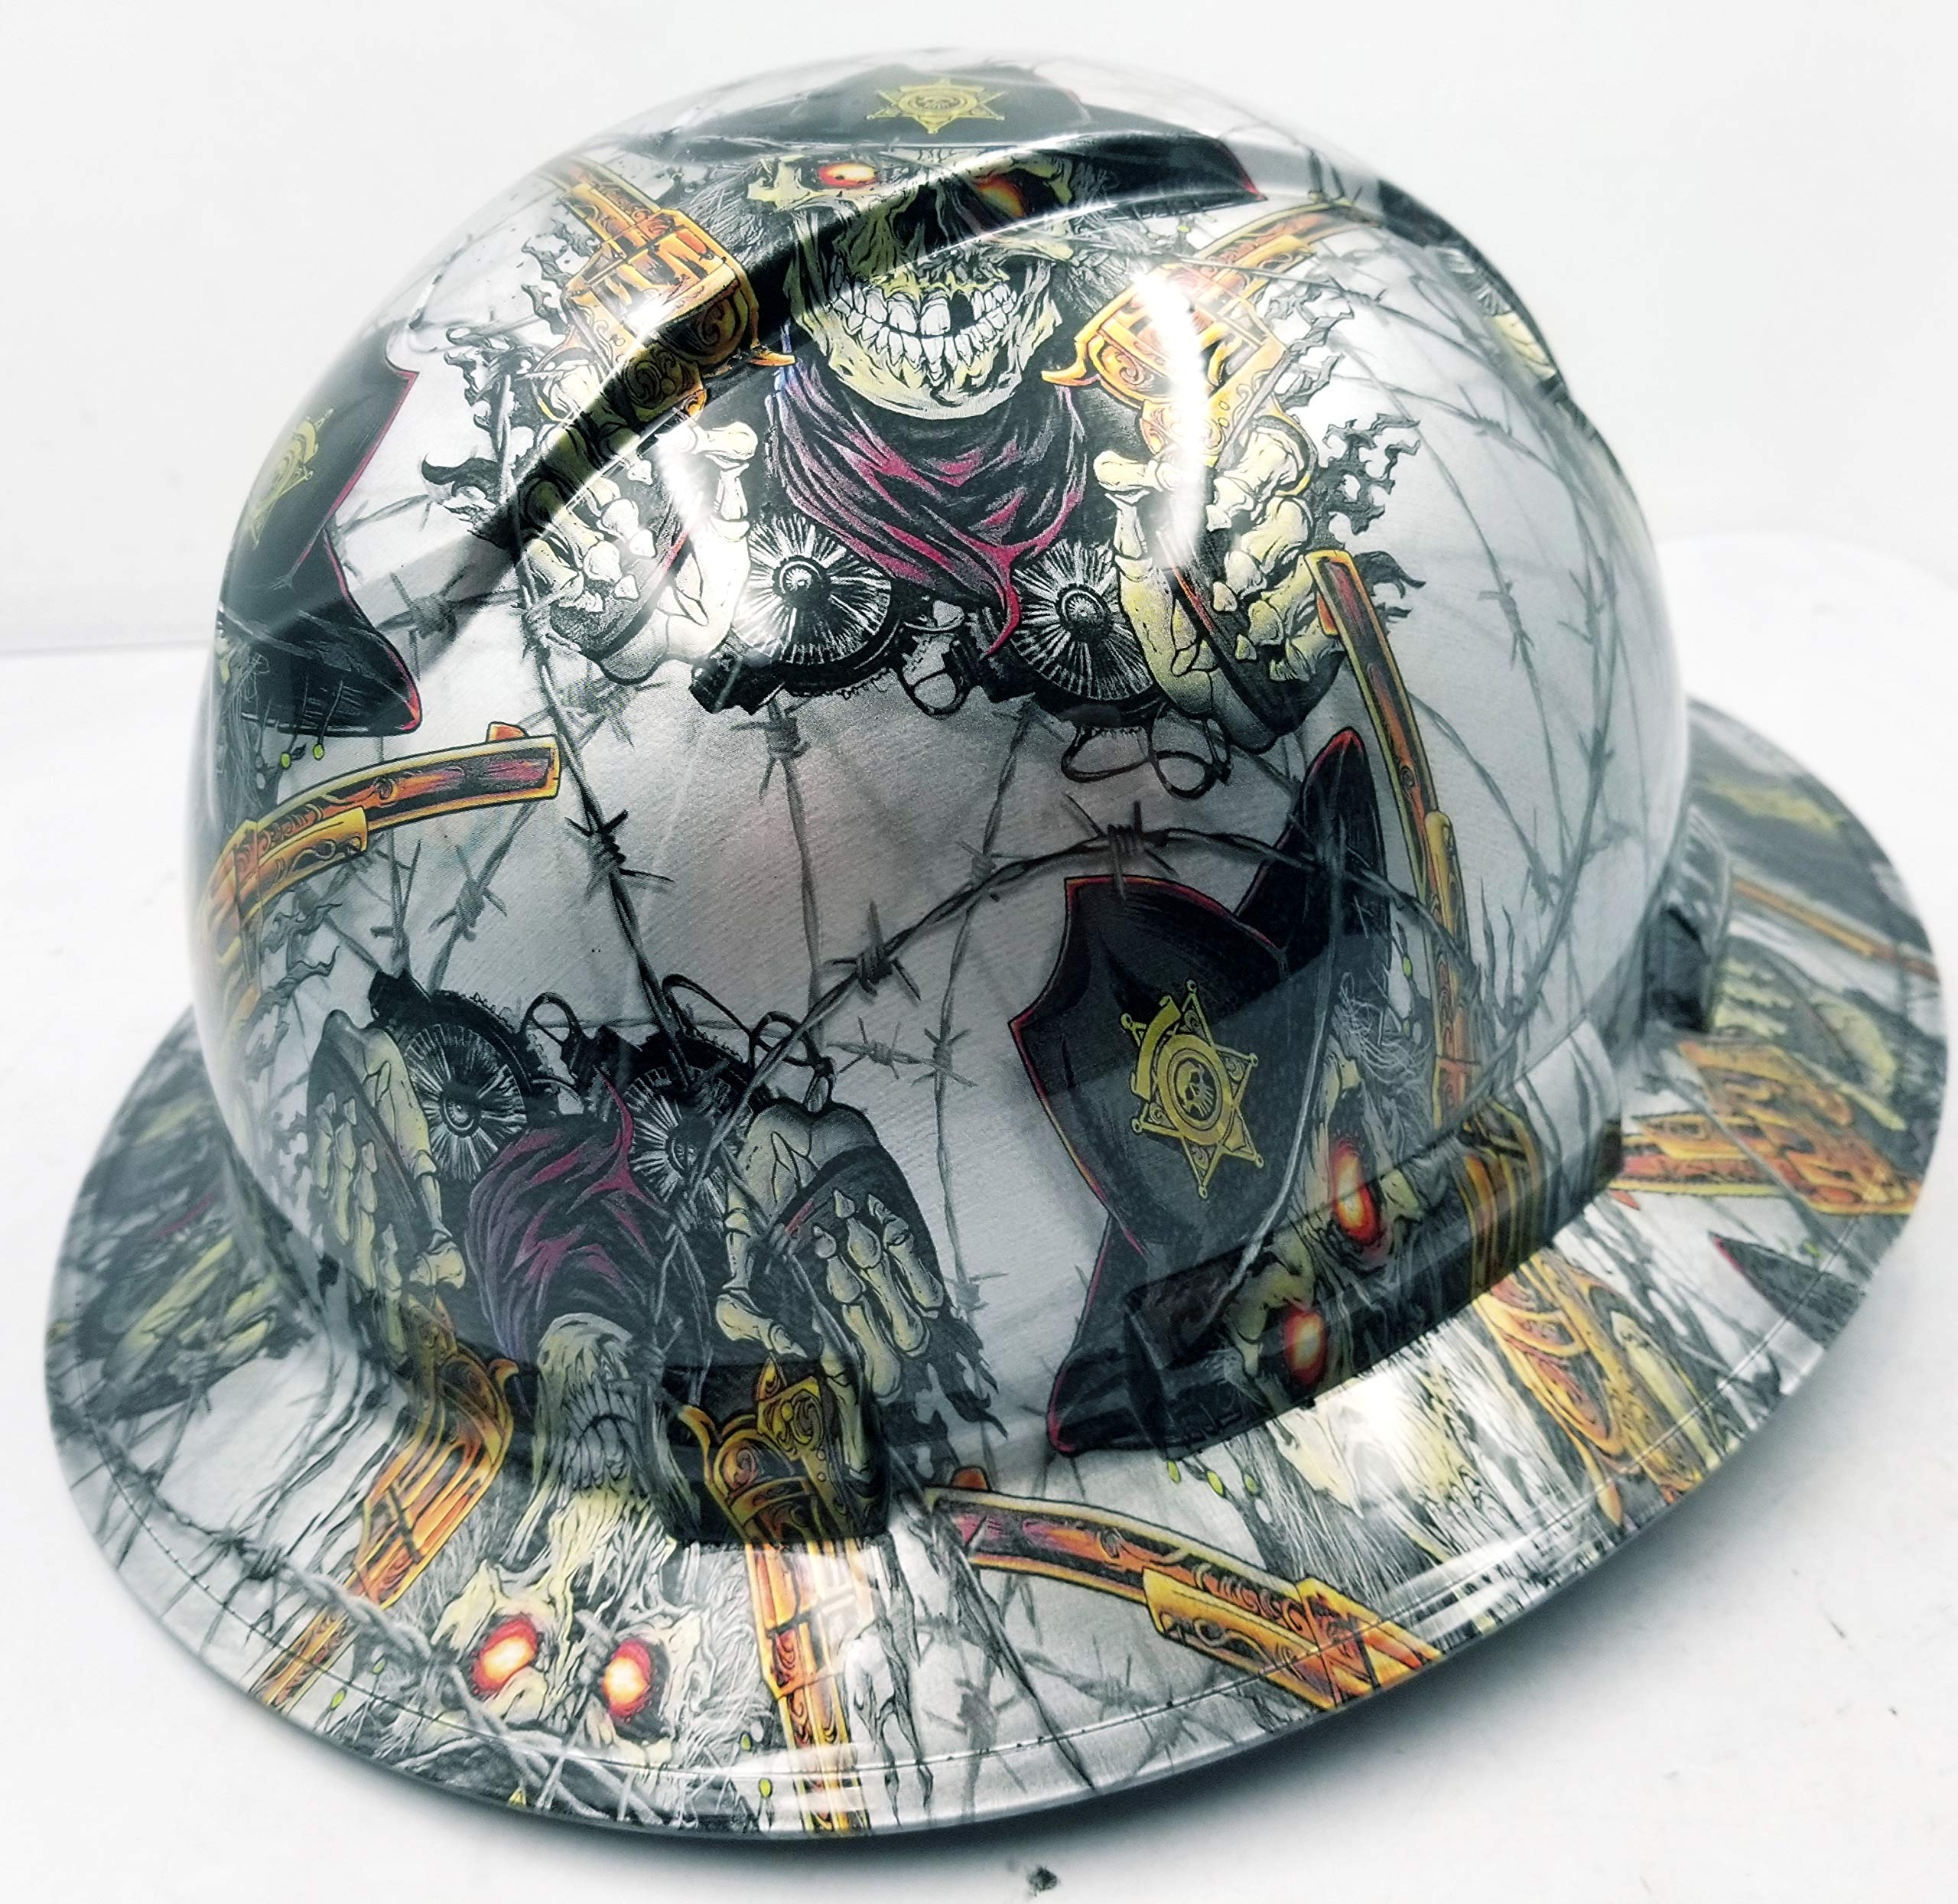 Wet Works Imaging Customized Pyramex Full Brim Dirty Dirty Harry Hard HAT with Ratcheting Suspension Custom LIDS Crazy Sick Construction PPE by Wet Works Imaging (Image #2)